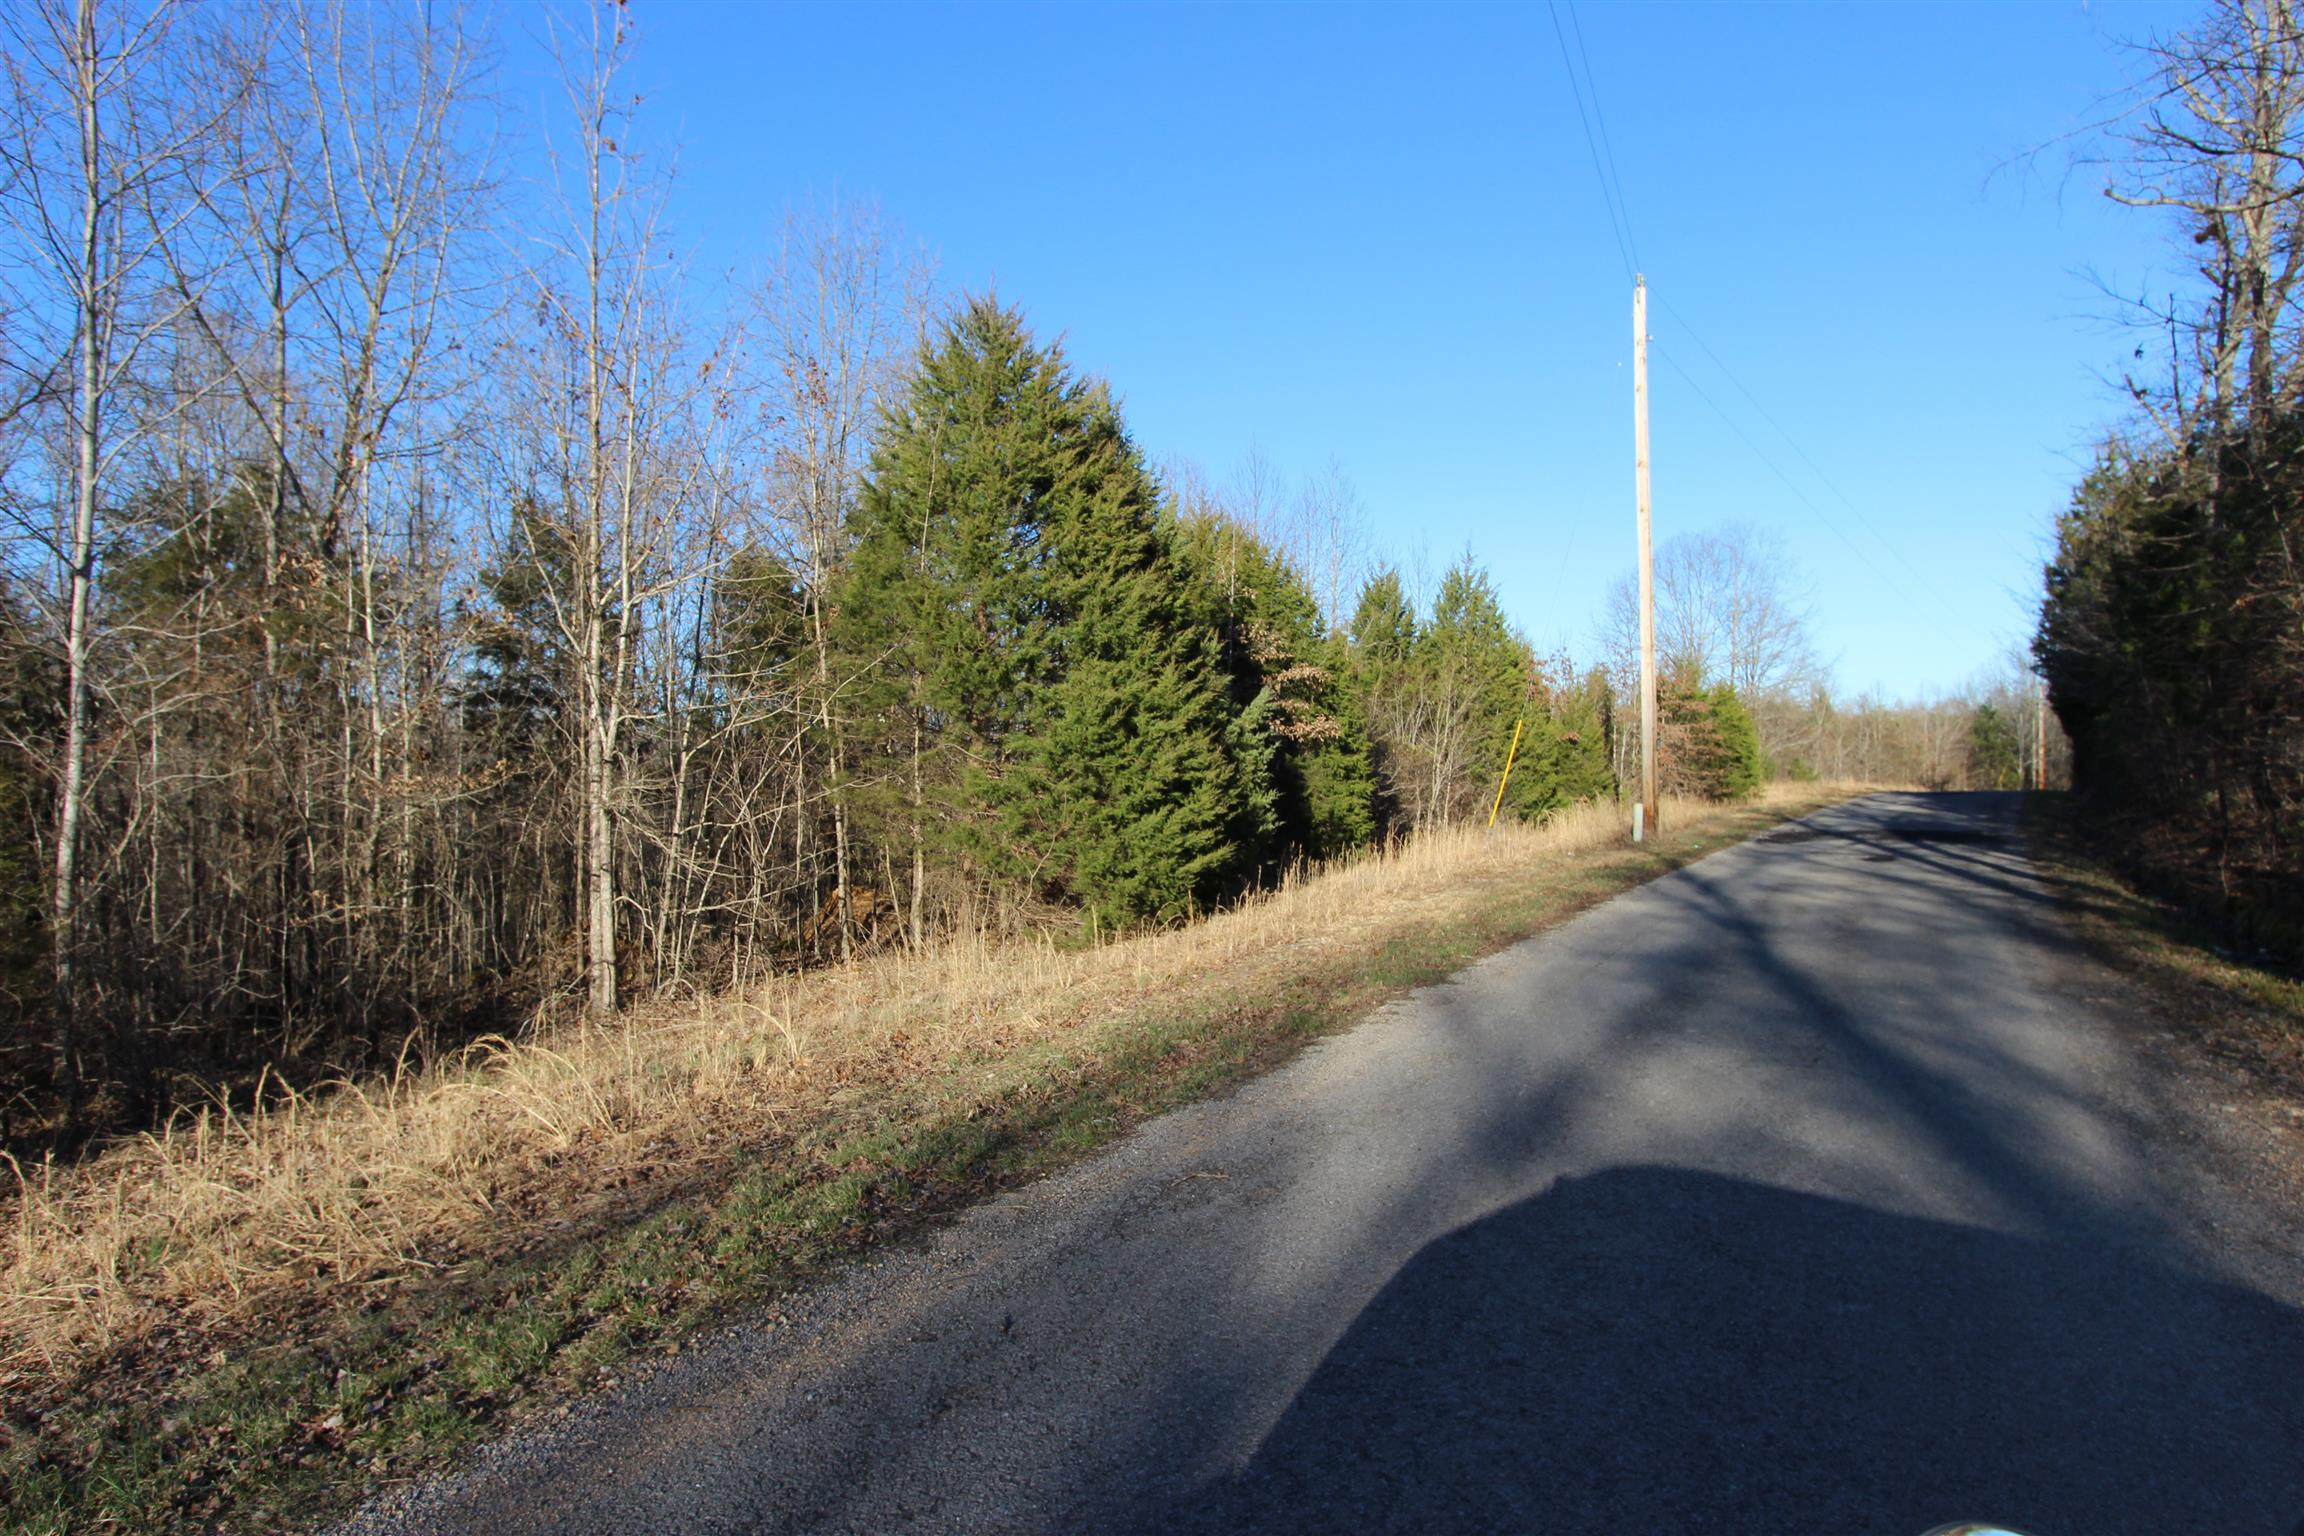 0 Walker Ridge Rd, Big Rock, TN 37023 - Big Rock, TN real estate listing